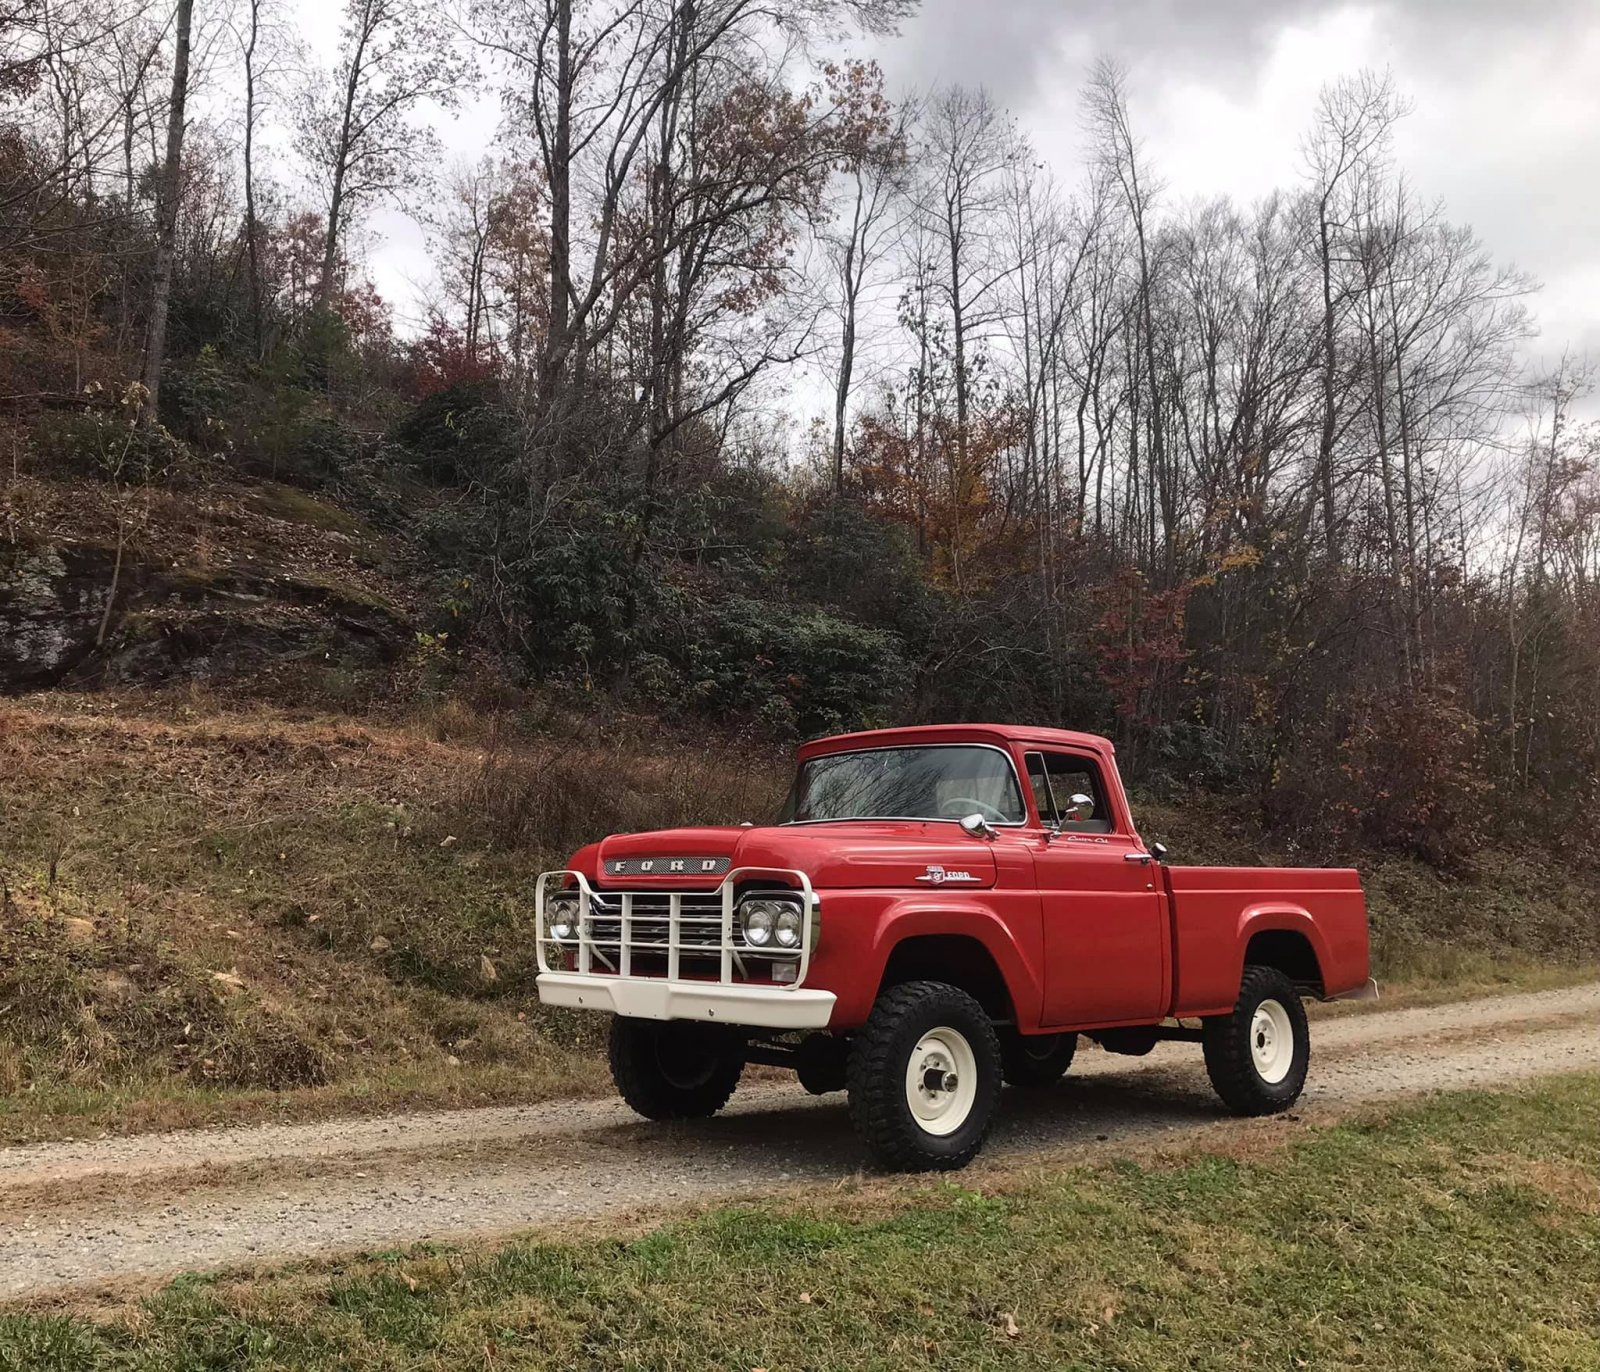 1959 Ford F100 4x4 Built From The Ground Up 18.jpg